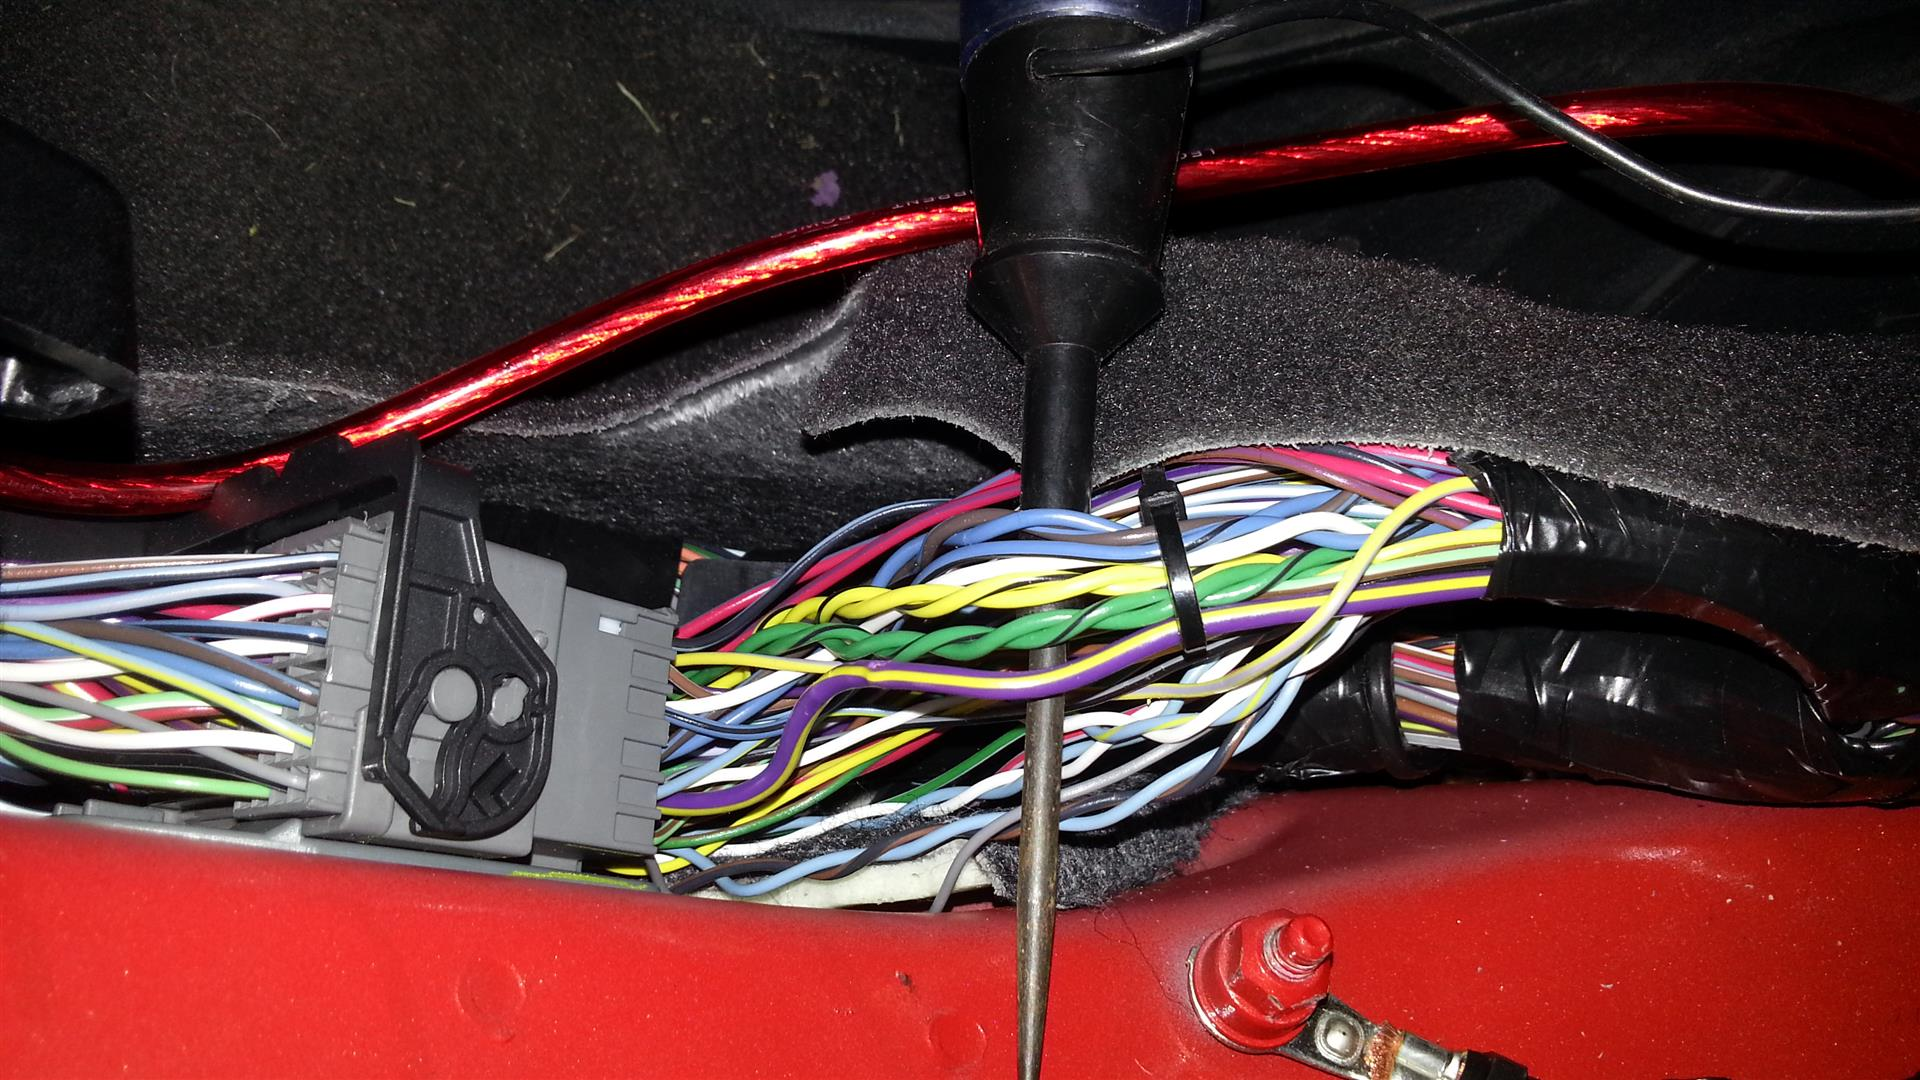 speaker wire color codes - chevy sonic owners forum  chevy sonic owners forum